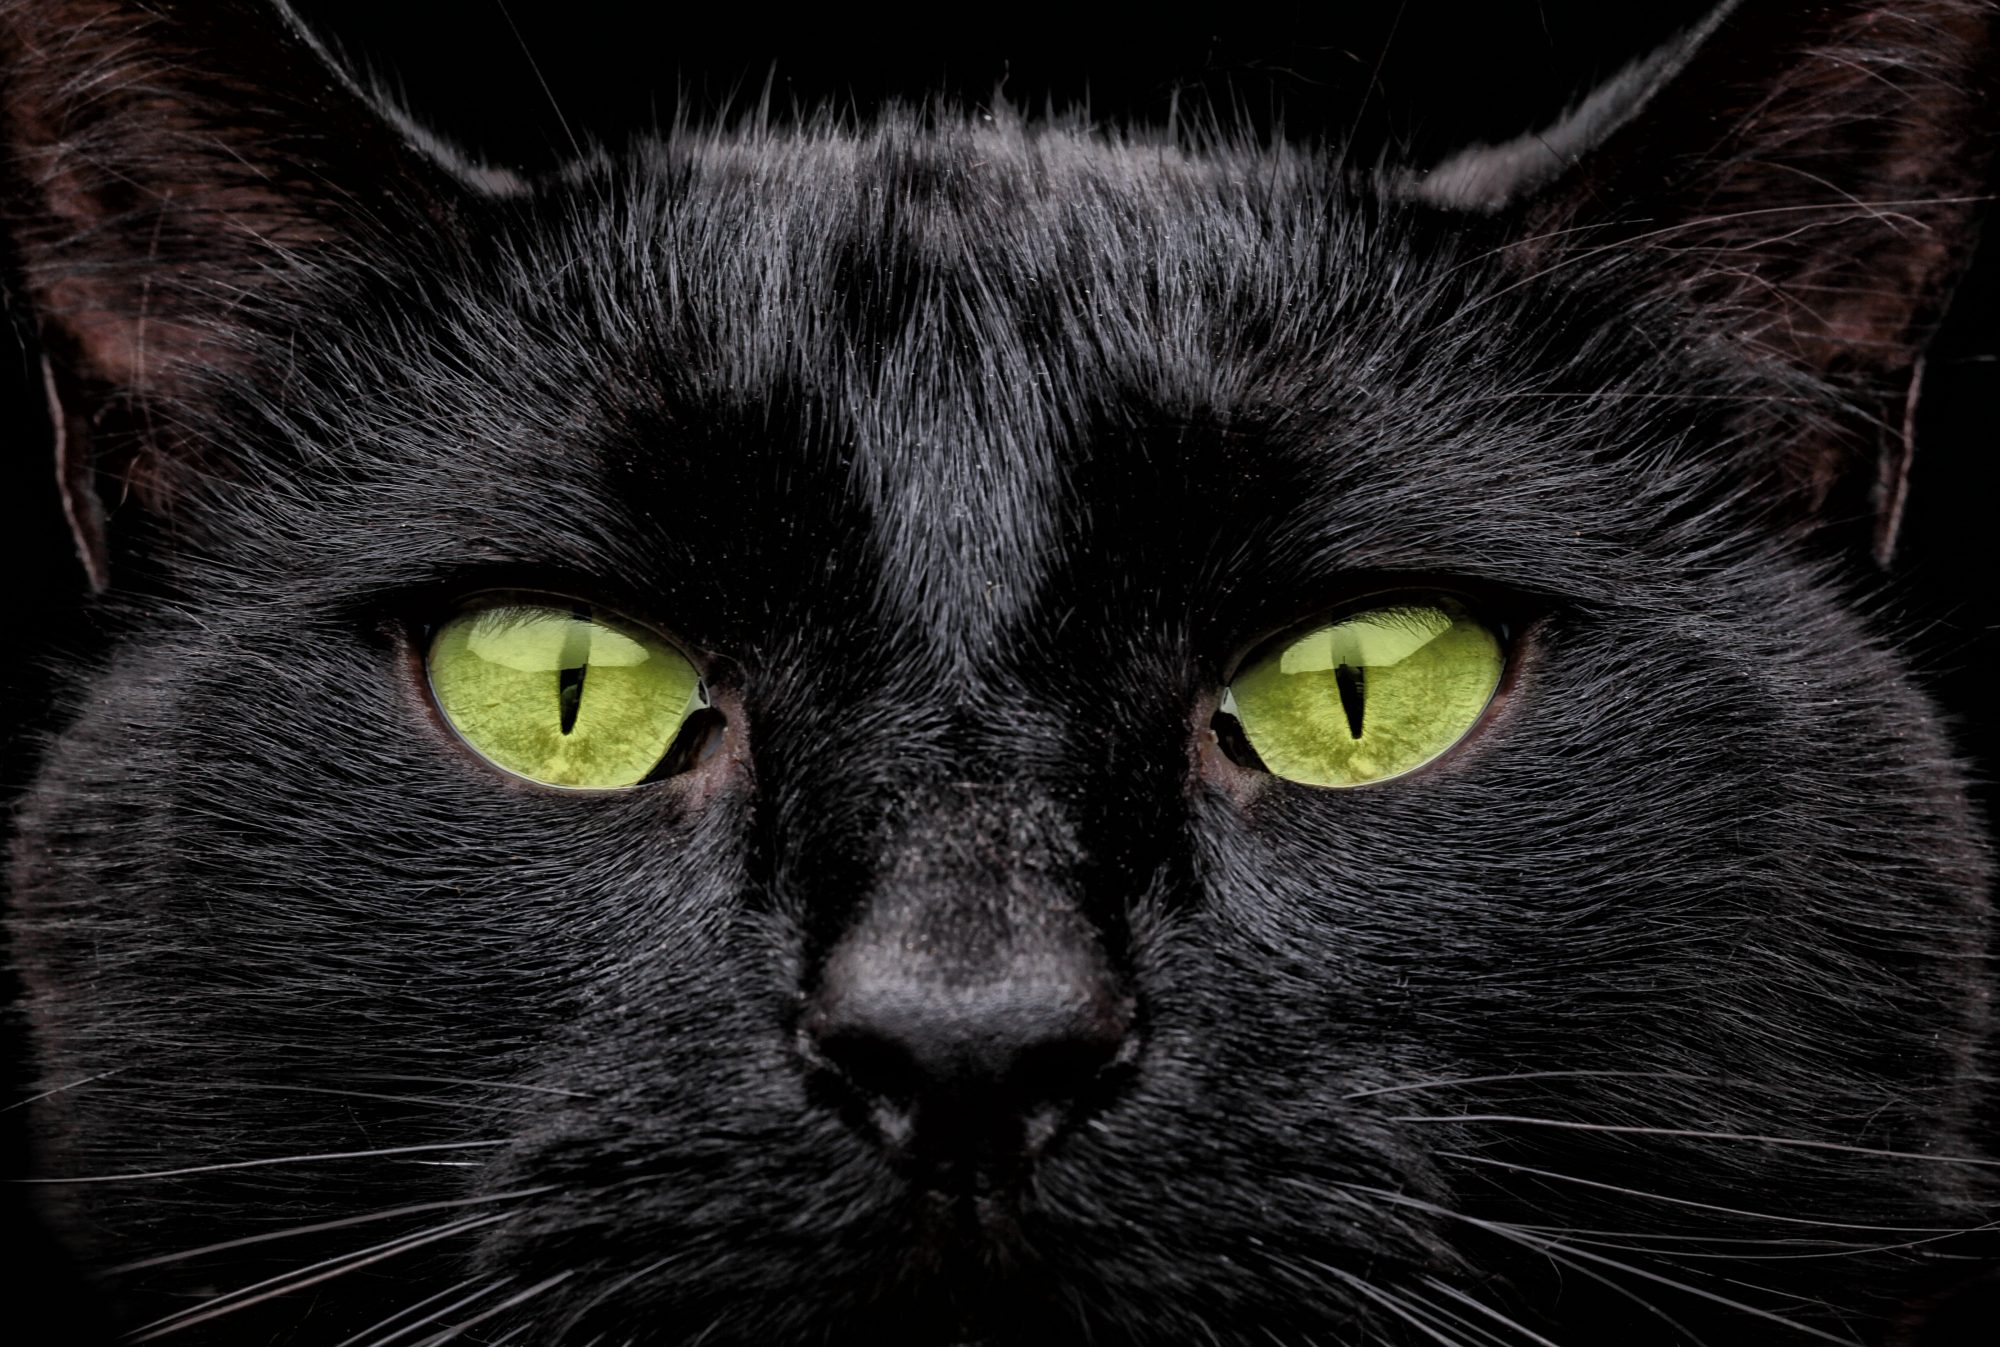 Friday the 13th black cat